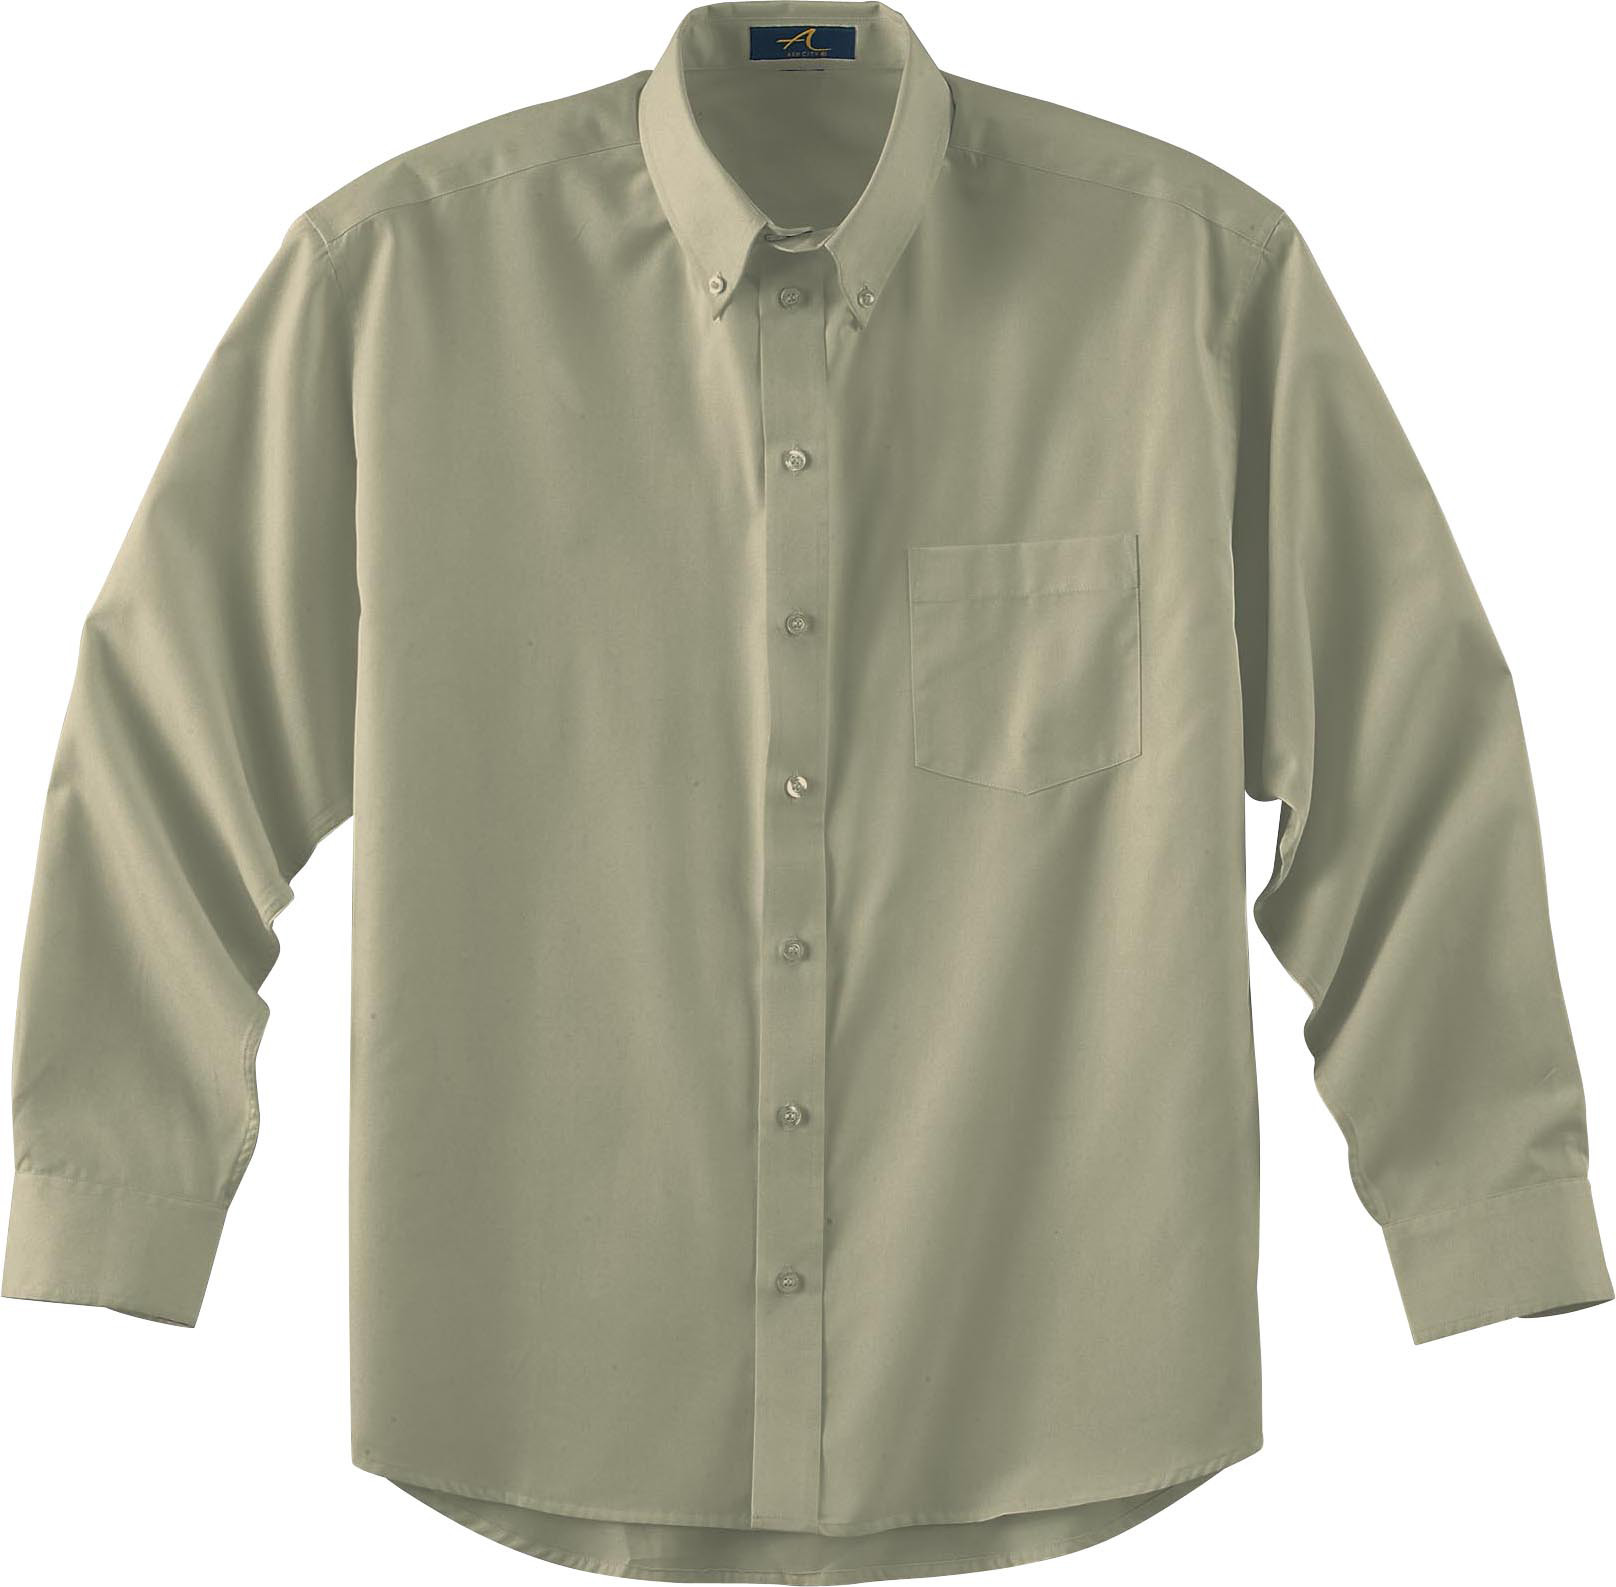 Ash City Teflon 87024 - Men's Long Sleeve Shirt With ...